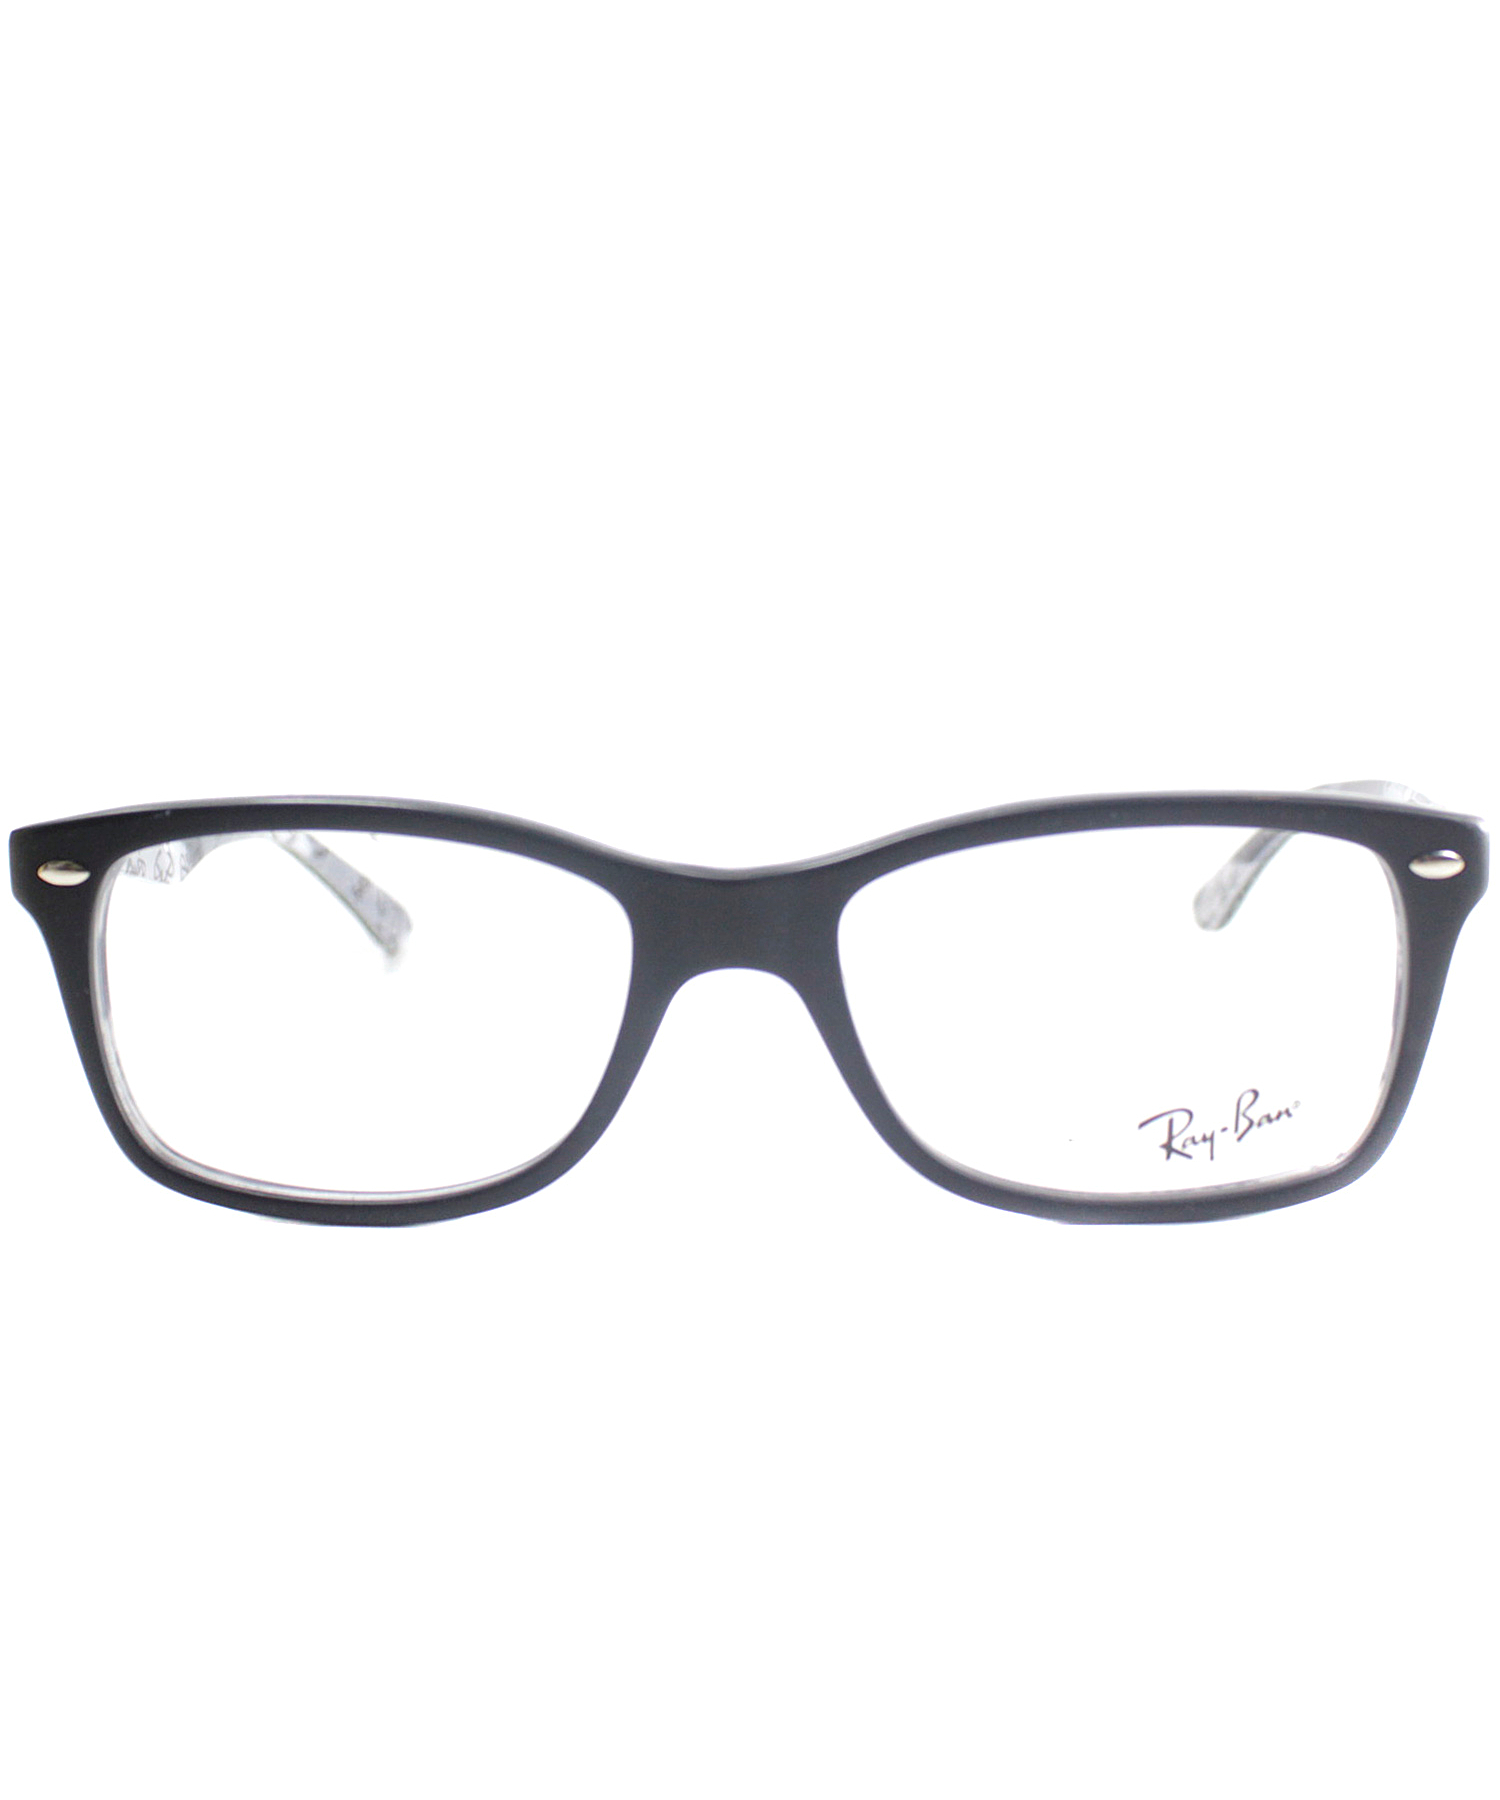 Ray Ban Glasses Frames China : Ray-ban Rectangle Plastic Eyeglasses in Black - Save 24% ...